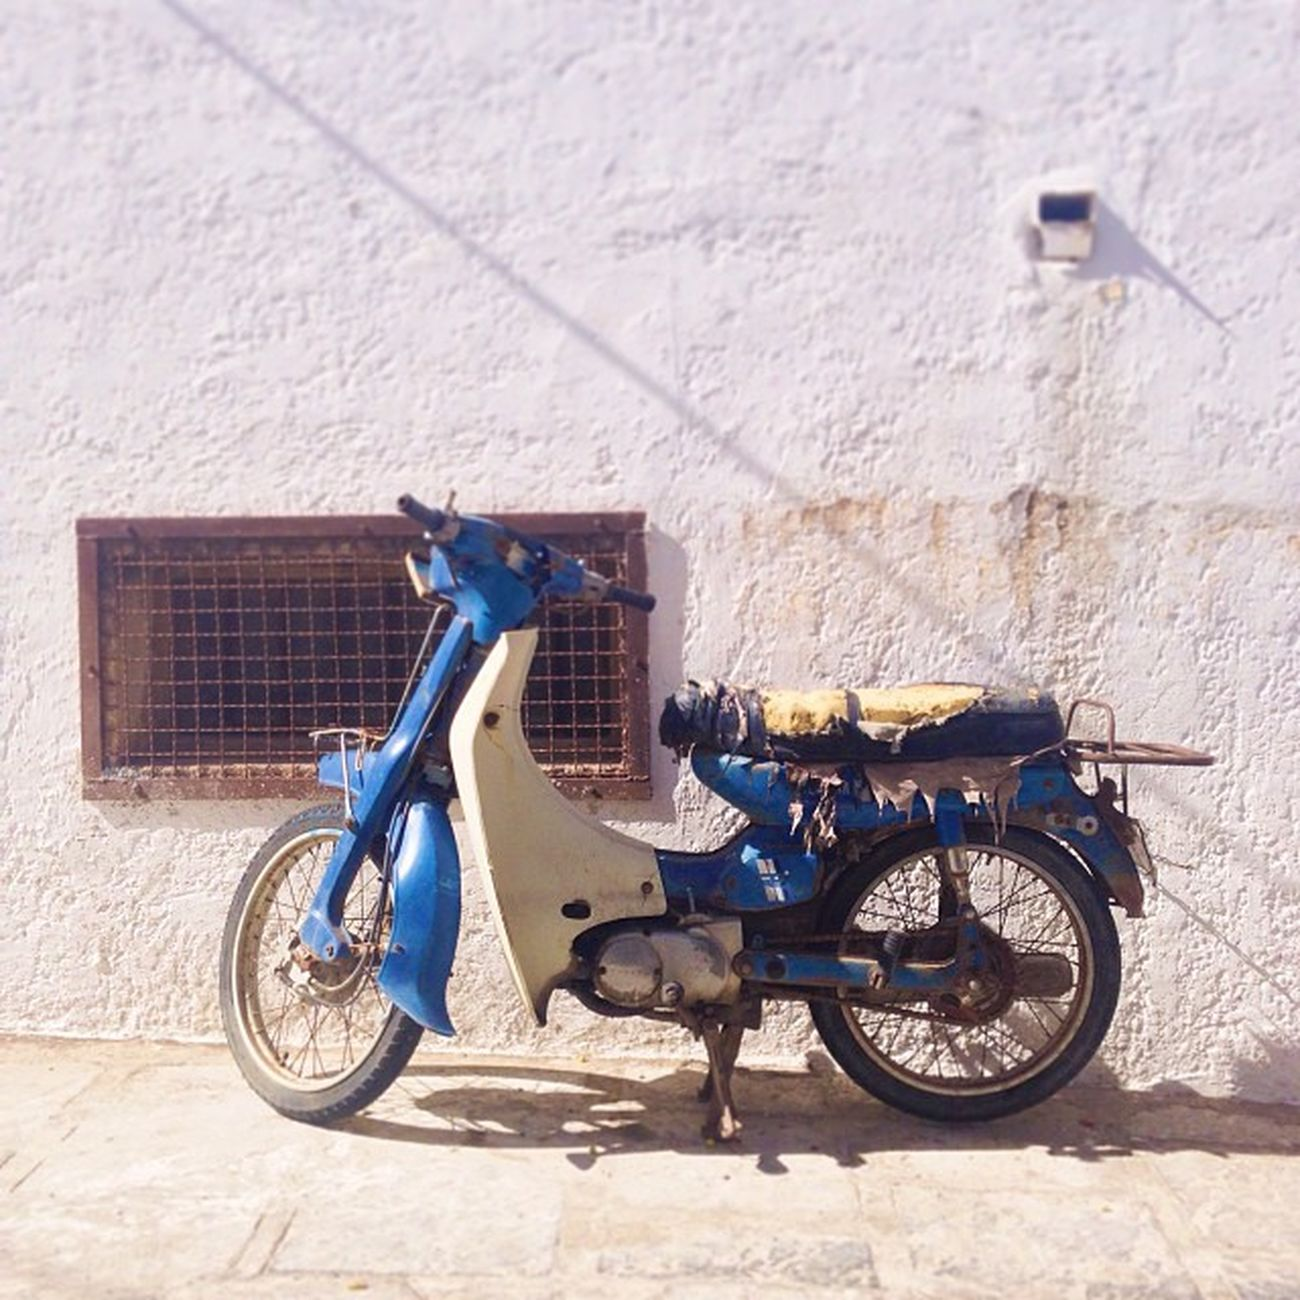 Comfortable Ride Ride Street Metal Streetart Foam Bike Rough Leather Comfortable Scooter Seat Wall Grate Stone Lindos Concrete Grill White Pictapgo Knackered Whitewash Greece Pictapgoapp Europe Sunny Comfy